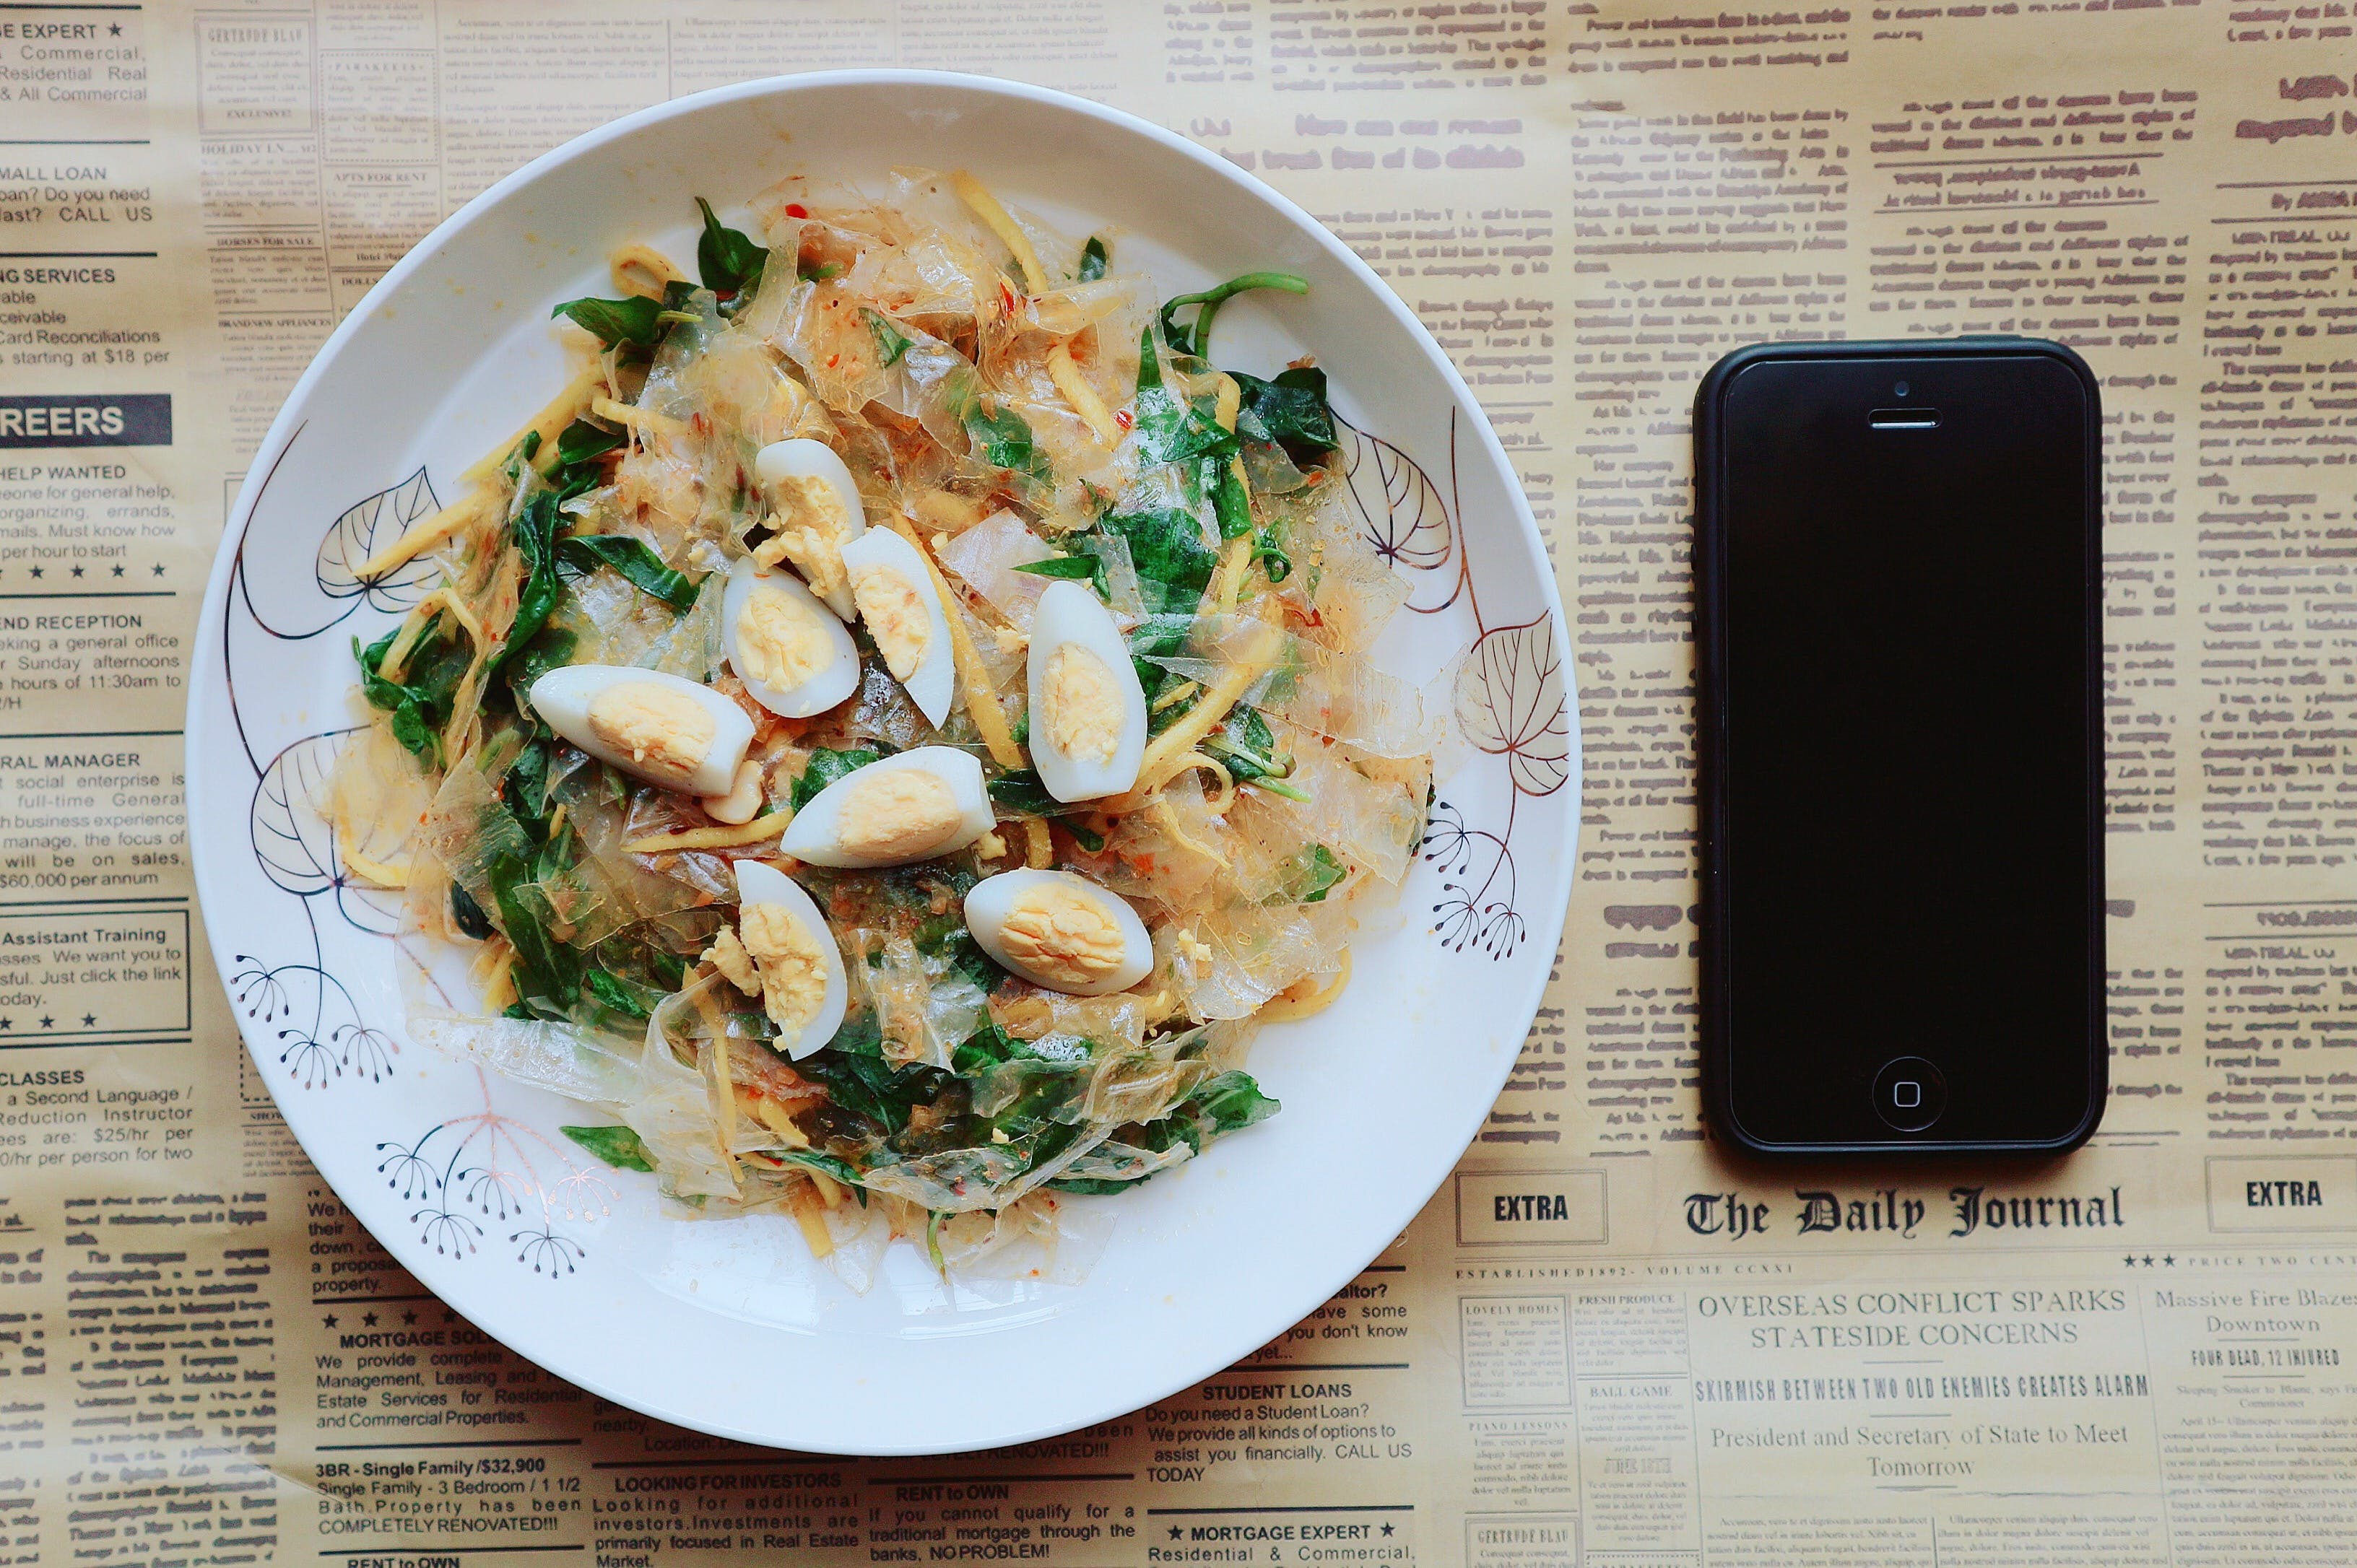 Black Iphone 5 Near Plate of Pasta Dish